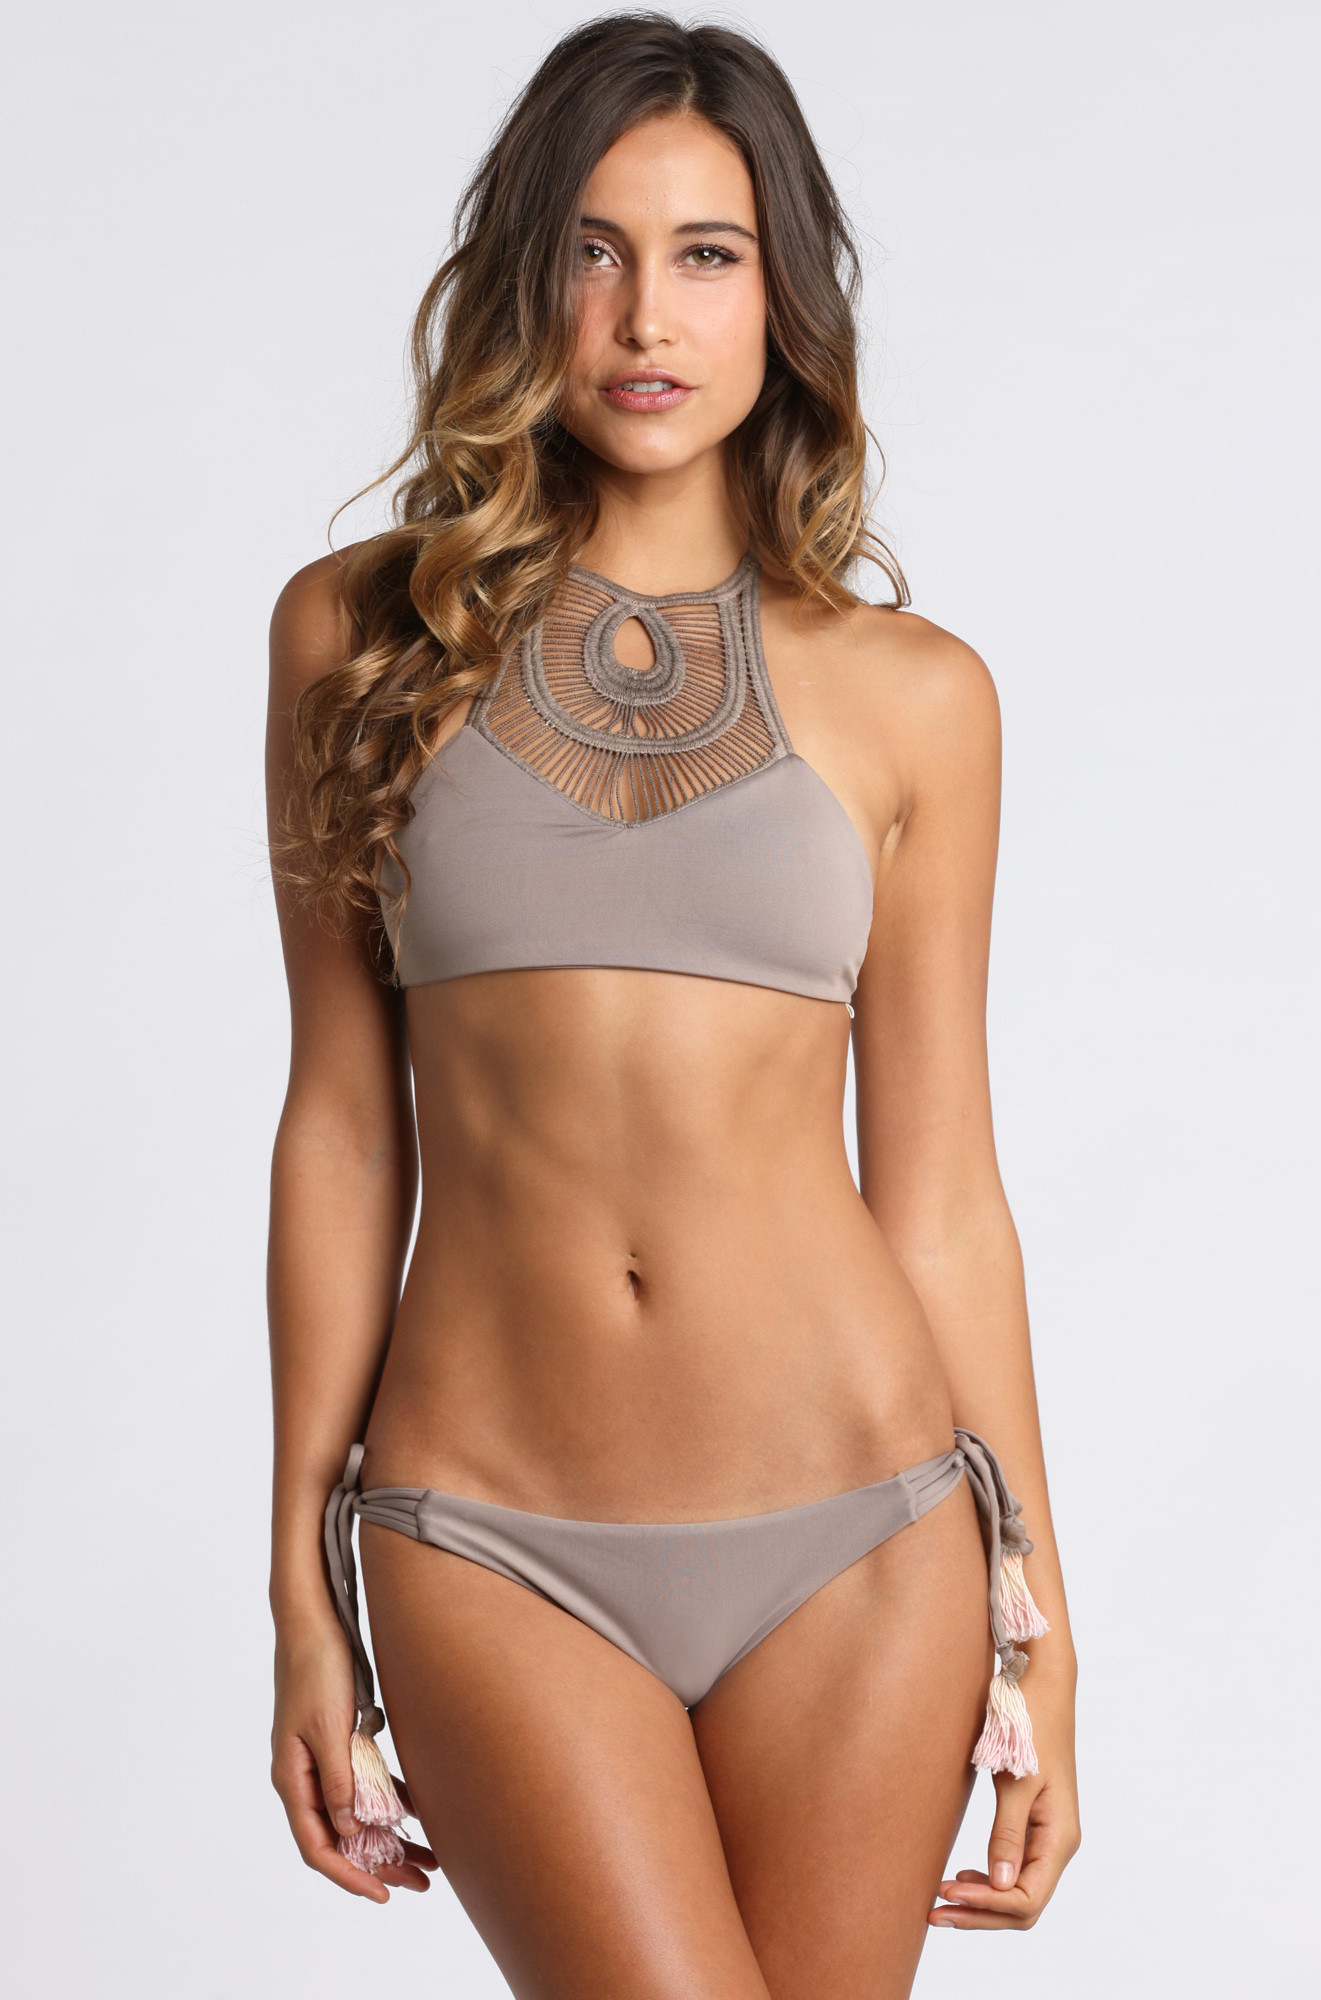 Designed for our surf athletes, these low-rise, minimal-coverage bikini swimsuit bottoms are reversible and have narrow straps that wrap around the front of the suit; they fit straight across the hips, and the body fabric is made of a soft and durable 83% recycled nylon/17% spandex blend. the Nanogrip Nireta Top is a supportive, athletic.